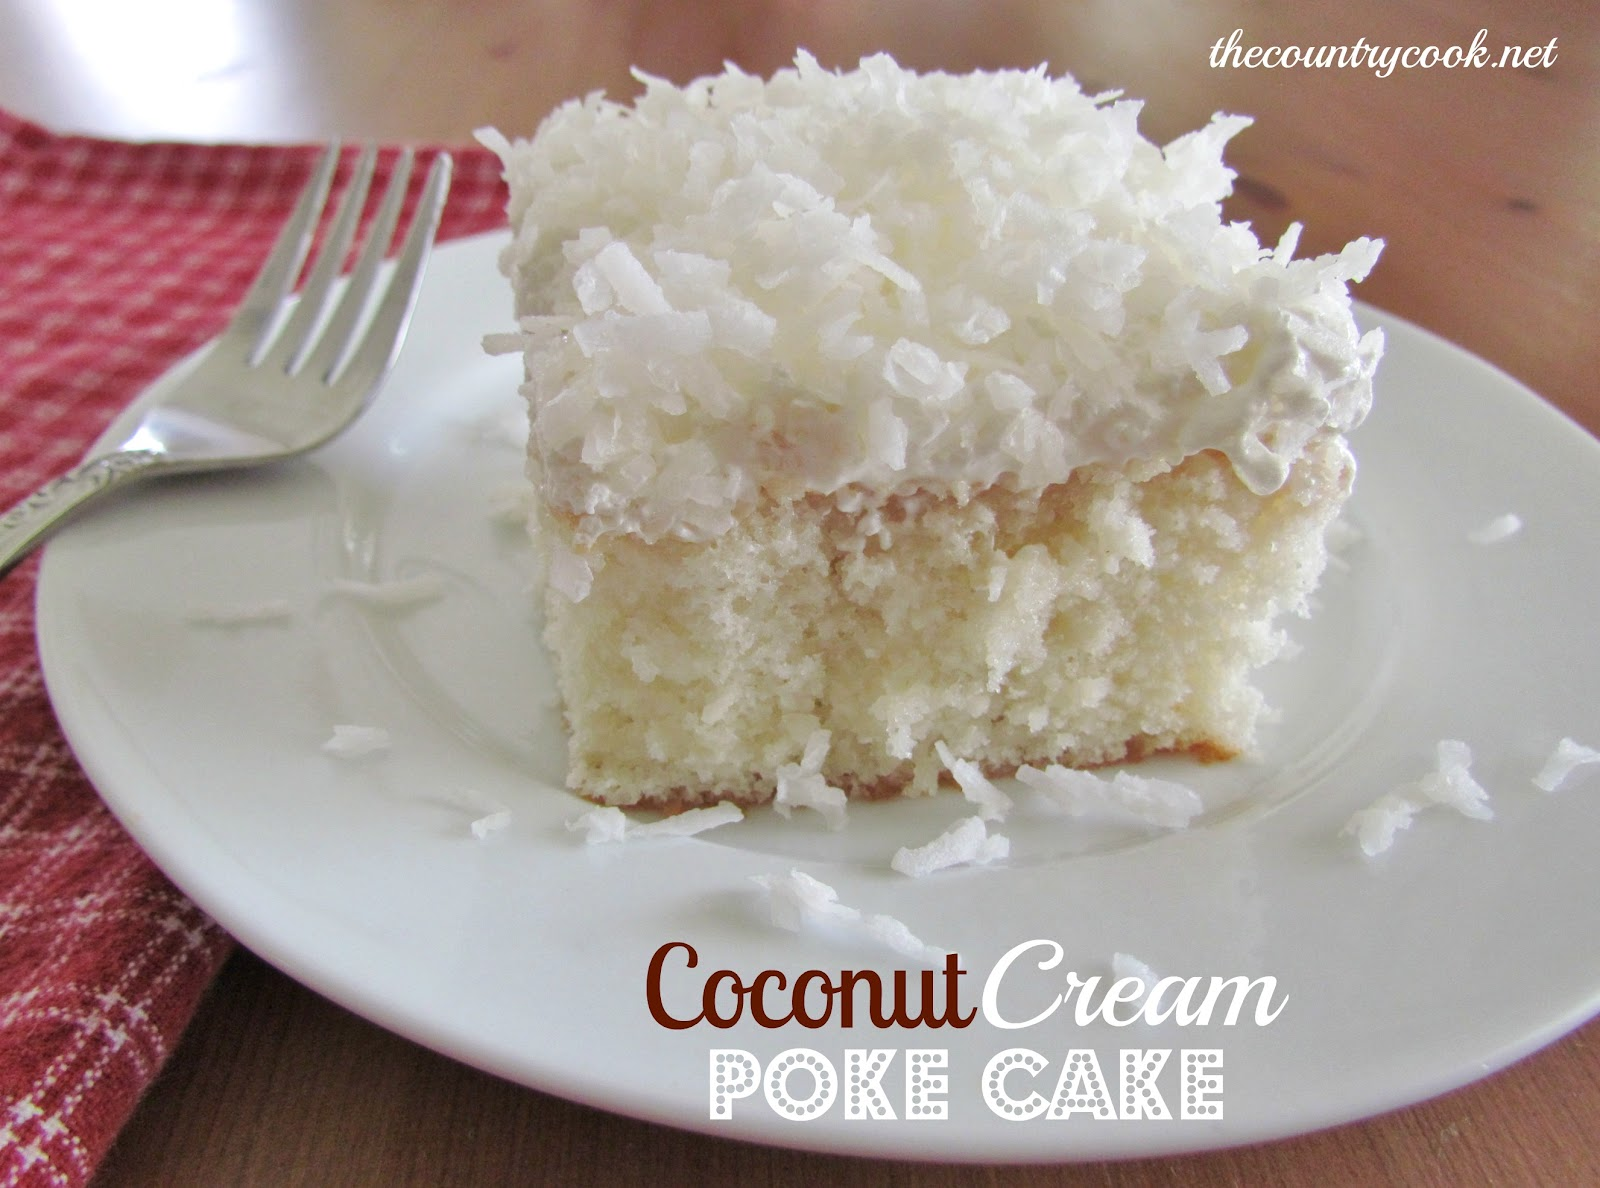 CAKE-RECIPE] Coconut Cream Poke Cake